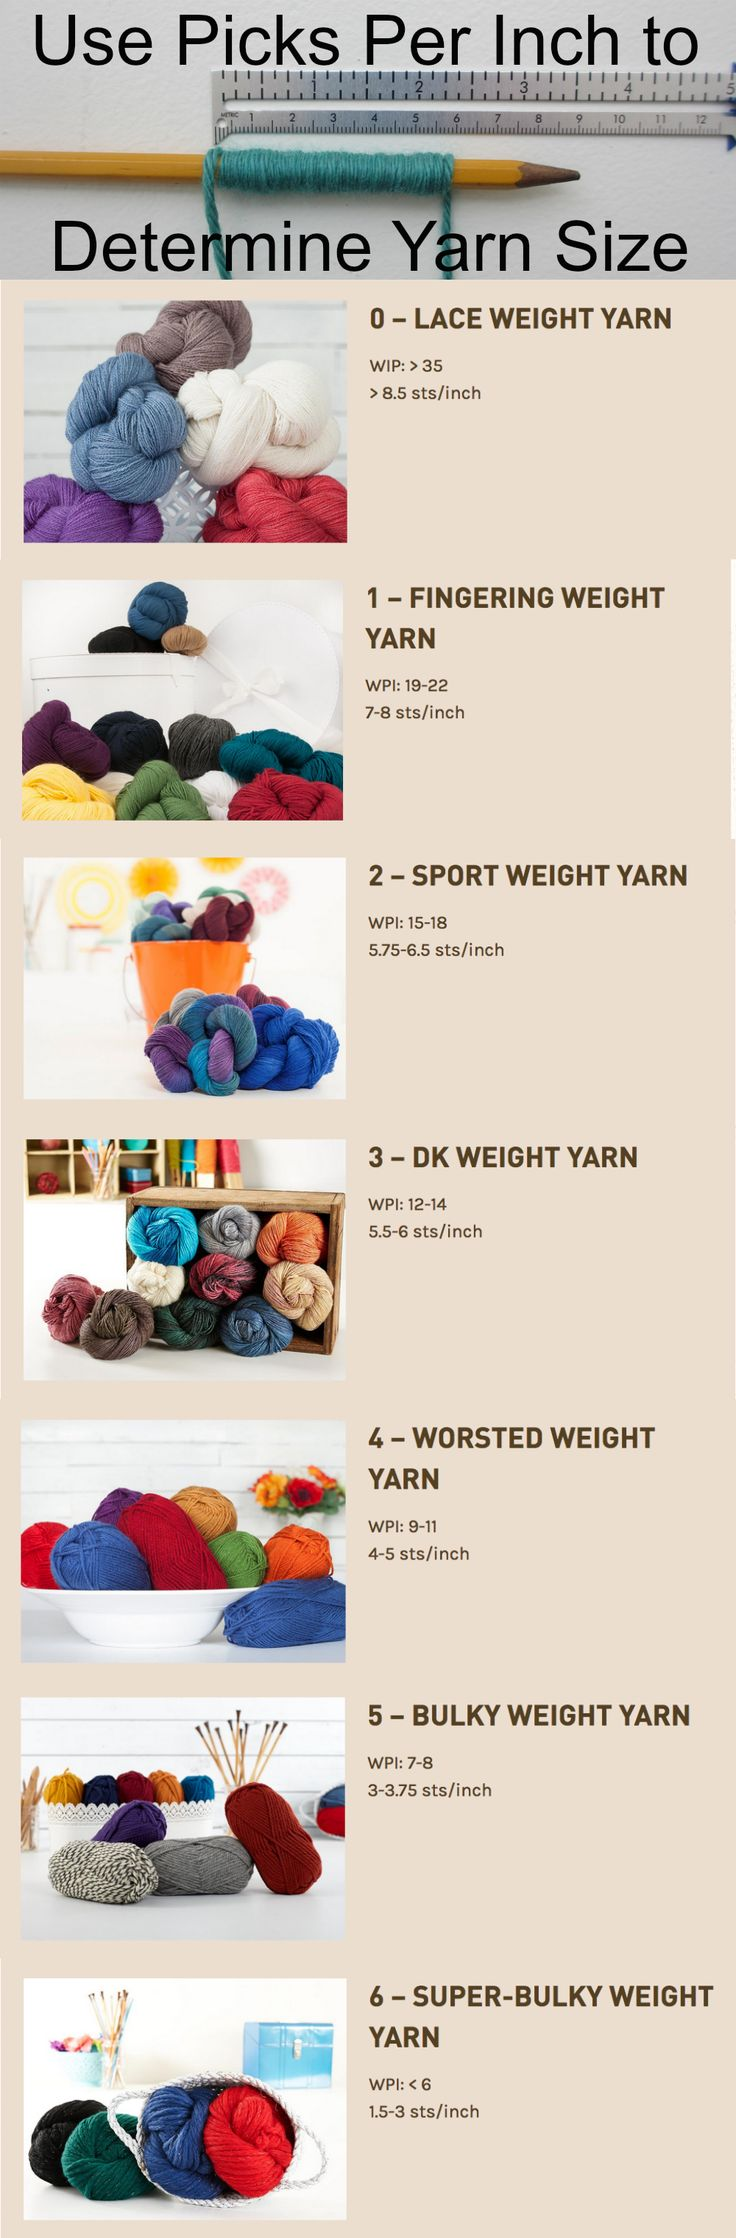 Got yarn with missing labels? Calculate Picks Per Inch to determine the yarn size so you know if you can use it in a pattern you like. 4Ufrom KnittingGuru www.KnittingGuru.... - Knitting Journal